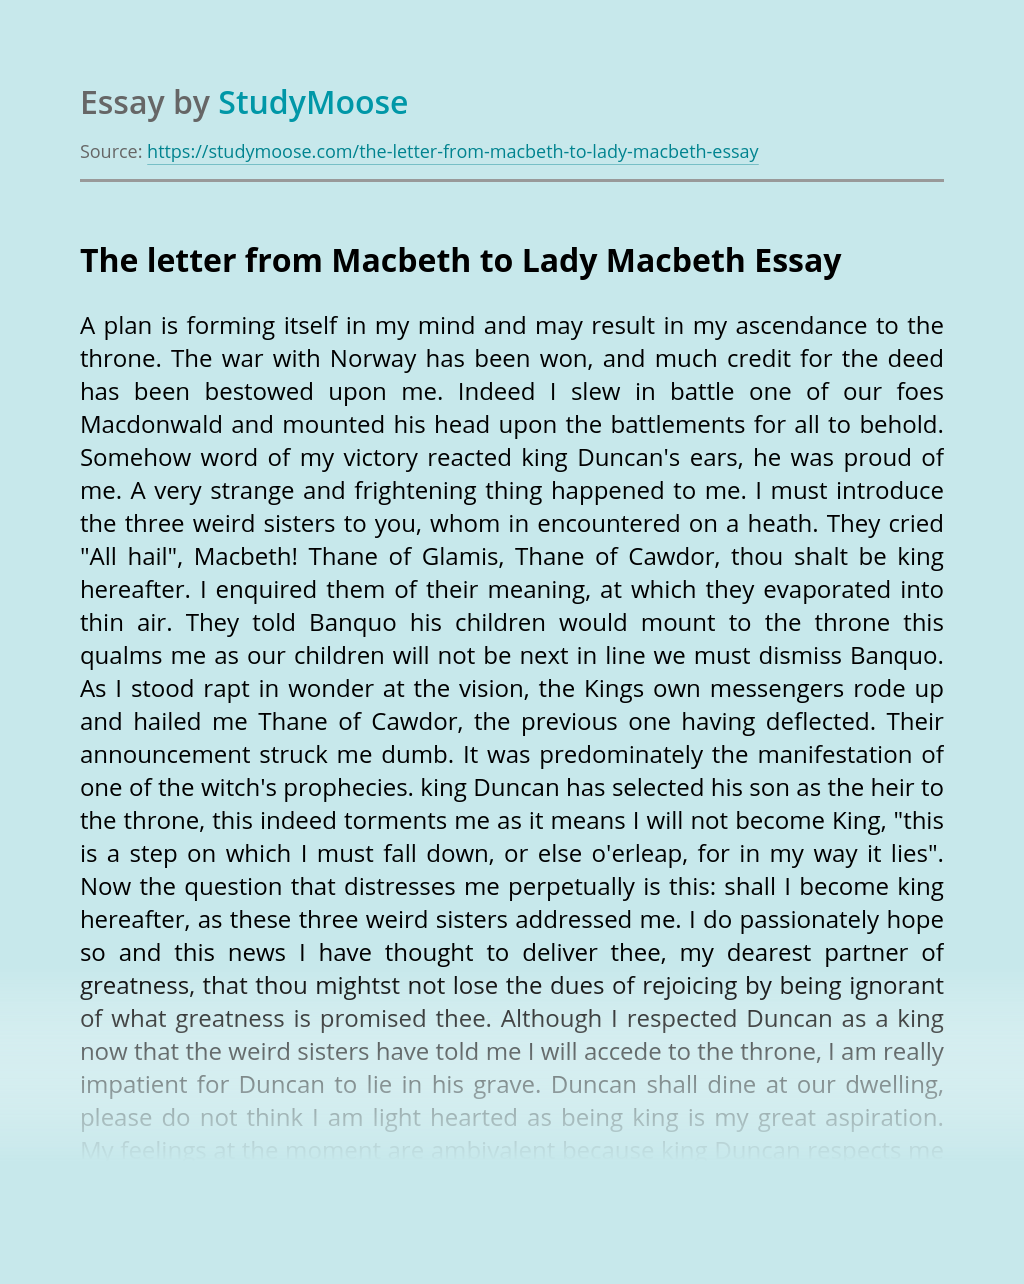 The letter from Macbeth to Lady Macbeth